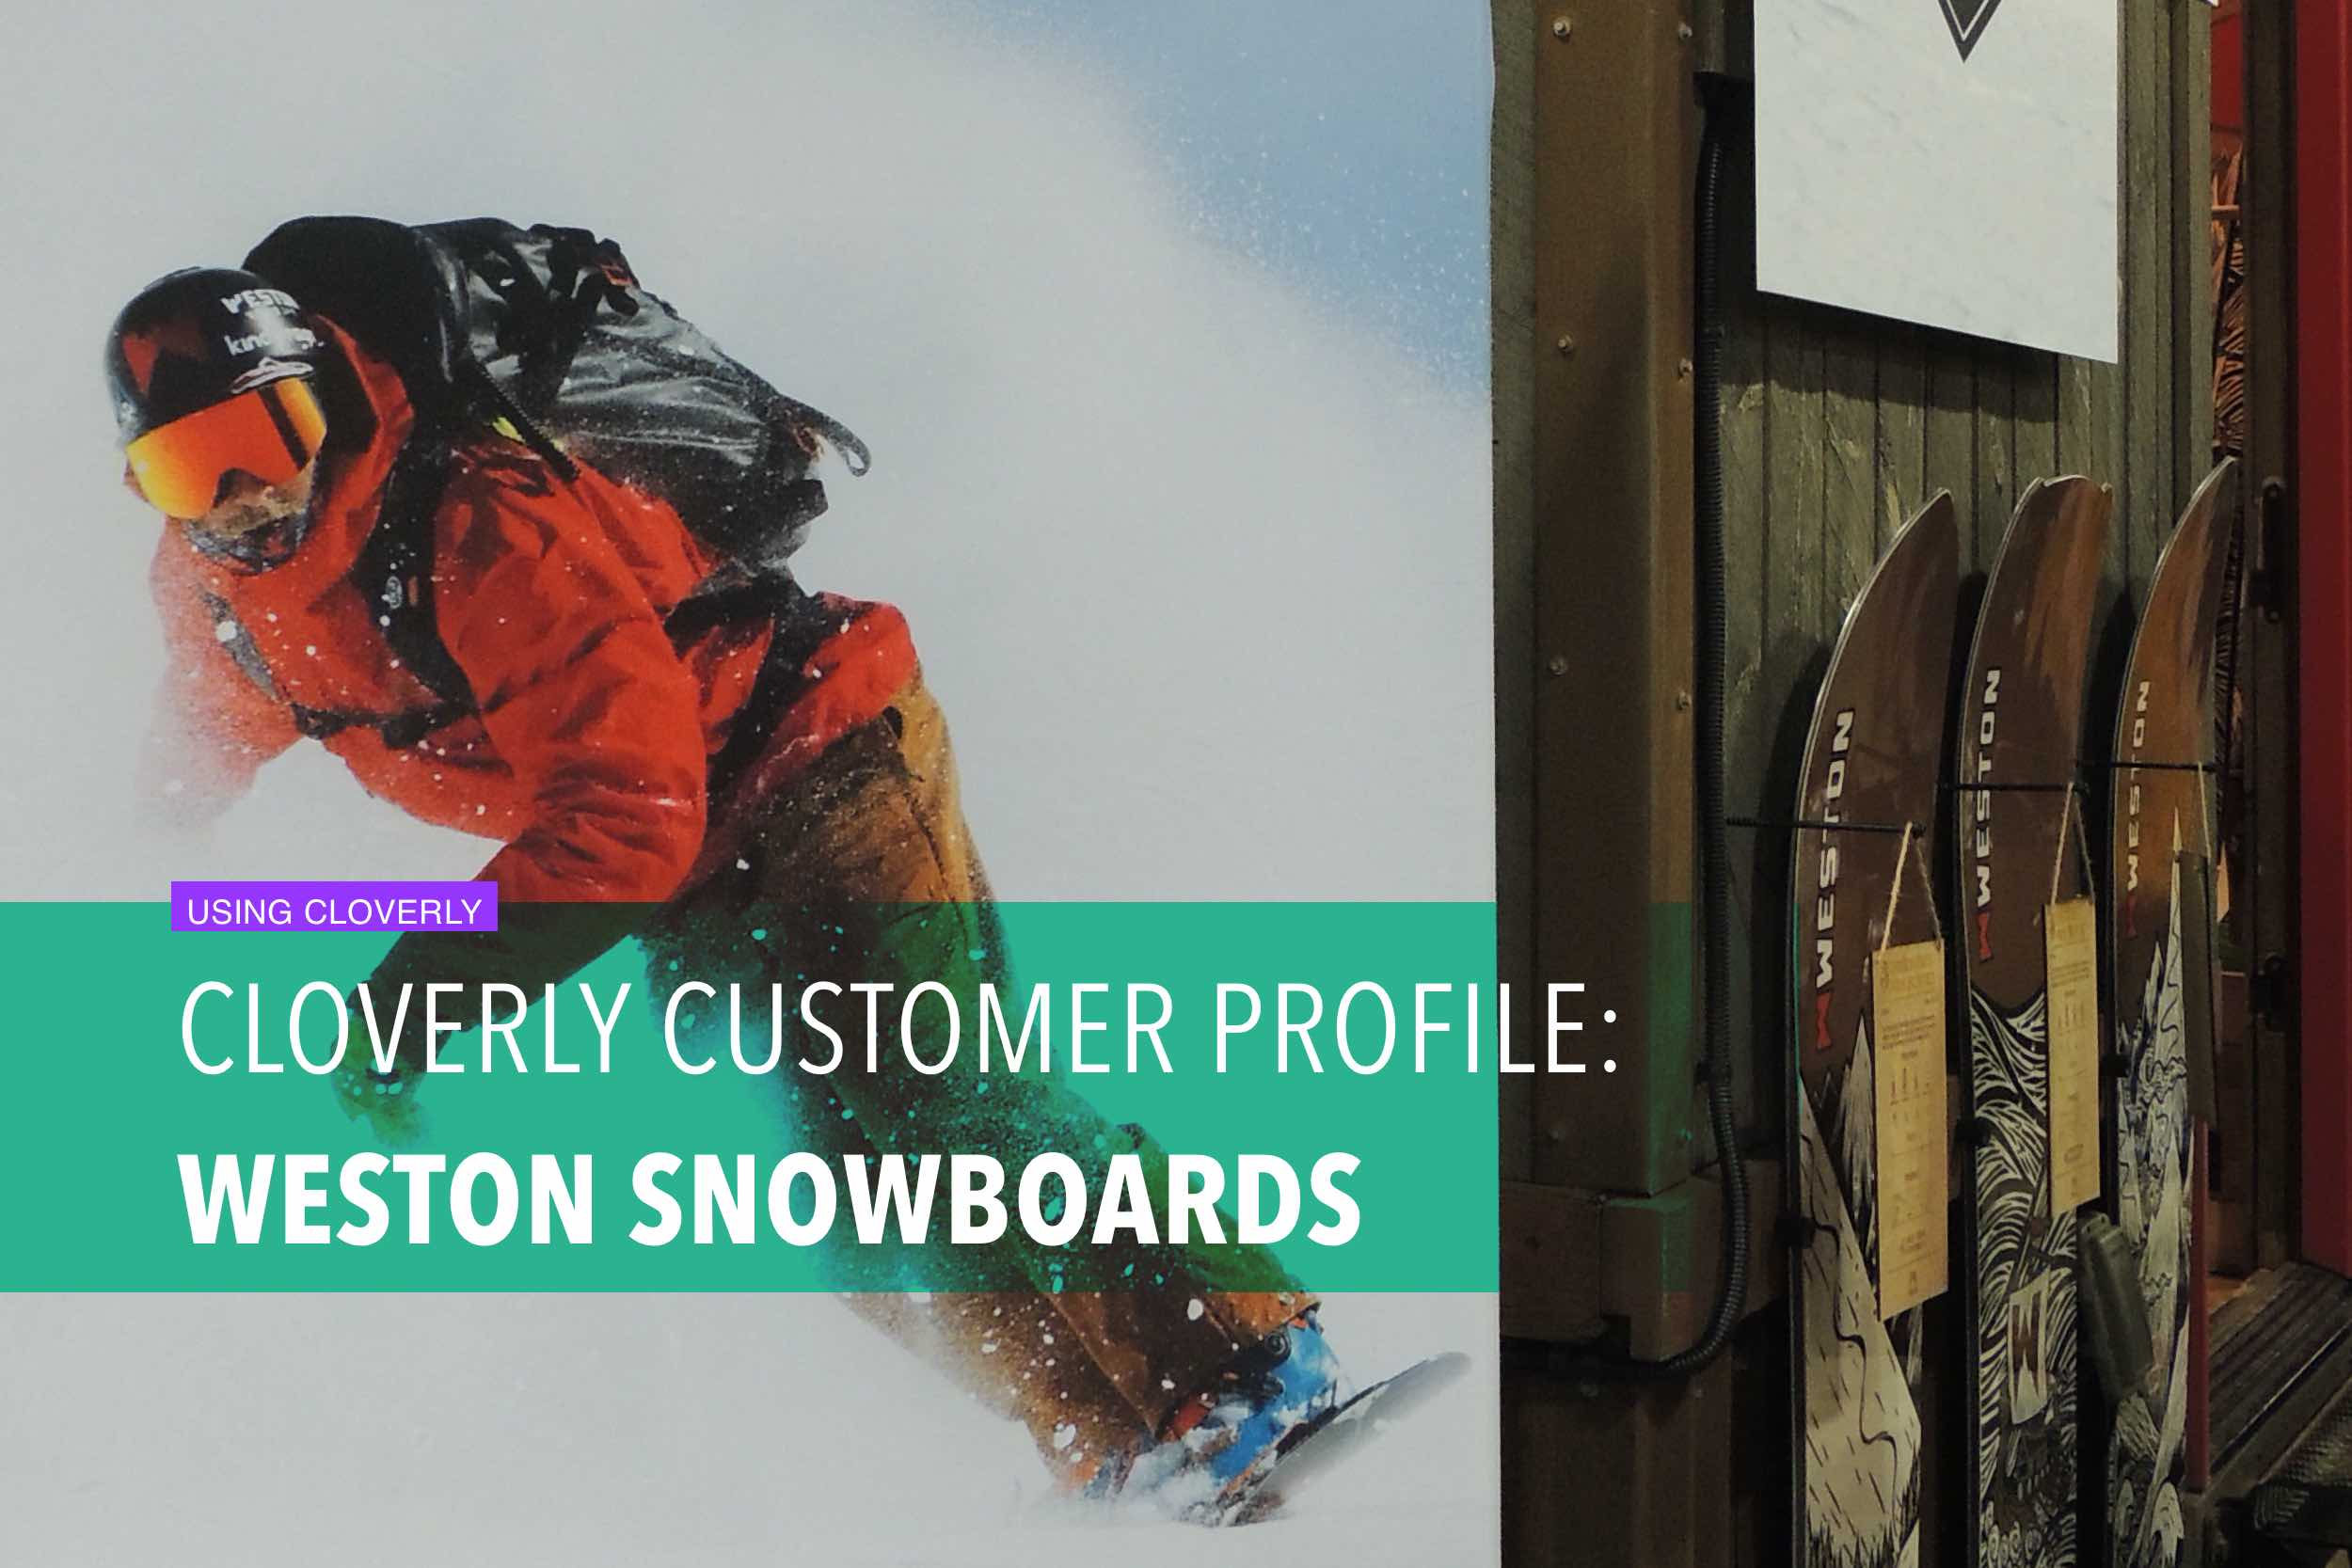 Cloverly customer profile: Weston Snowboards